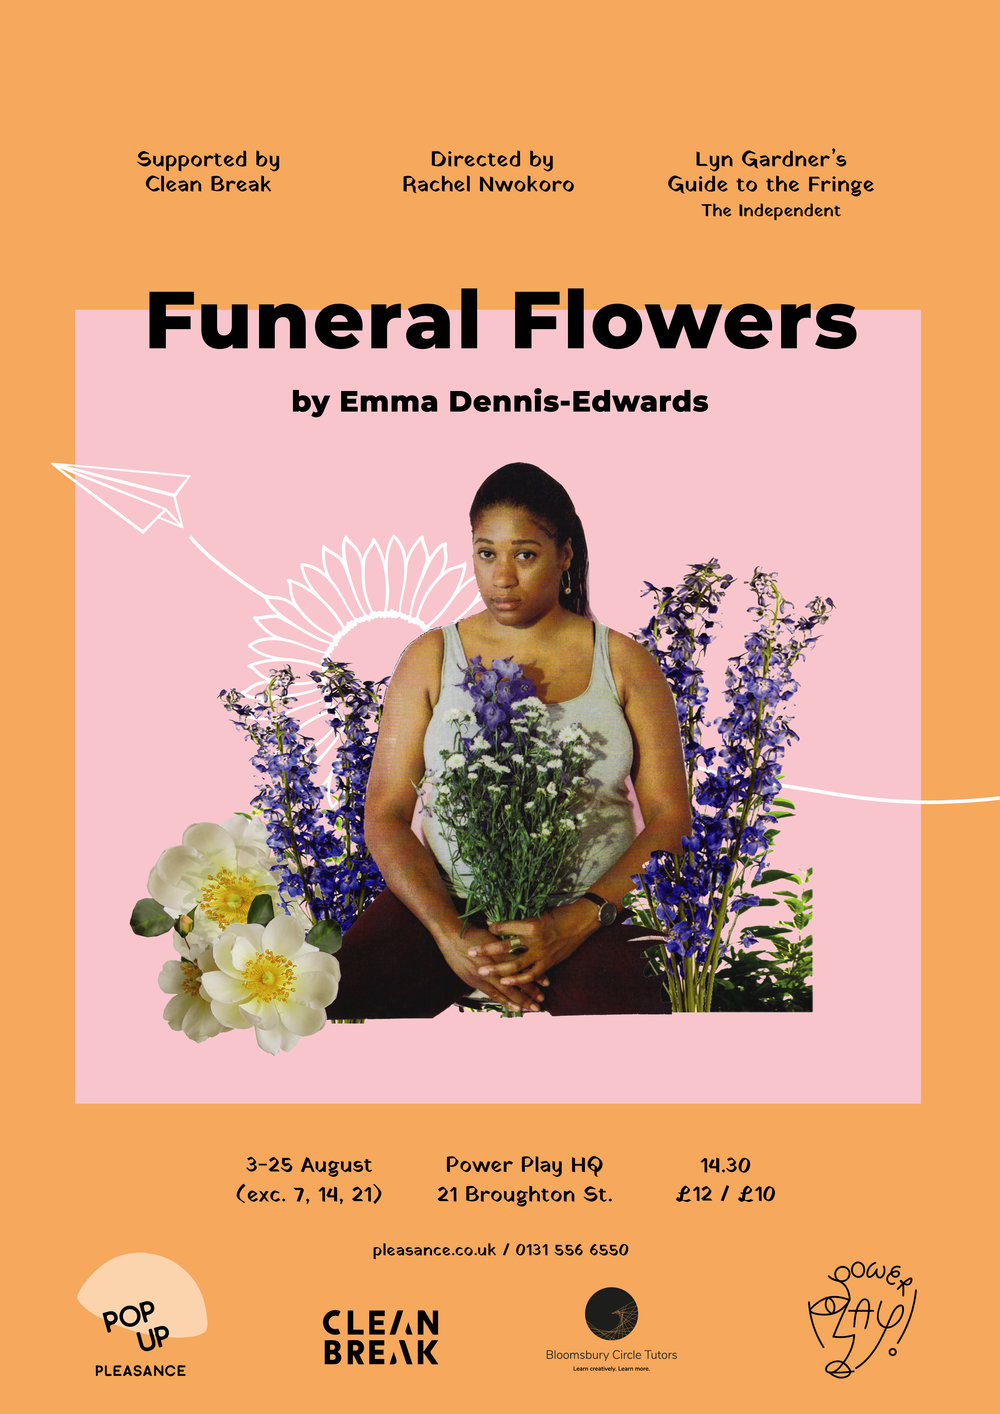 Power Play LW v007 Funeral Flowers.jpg